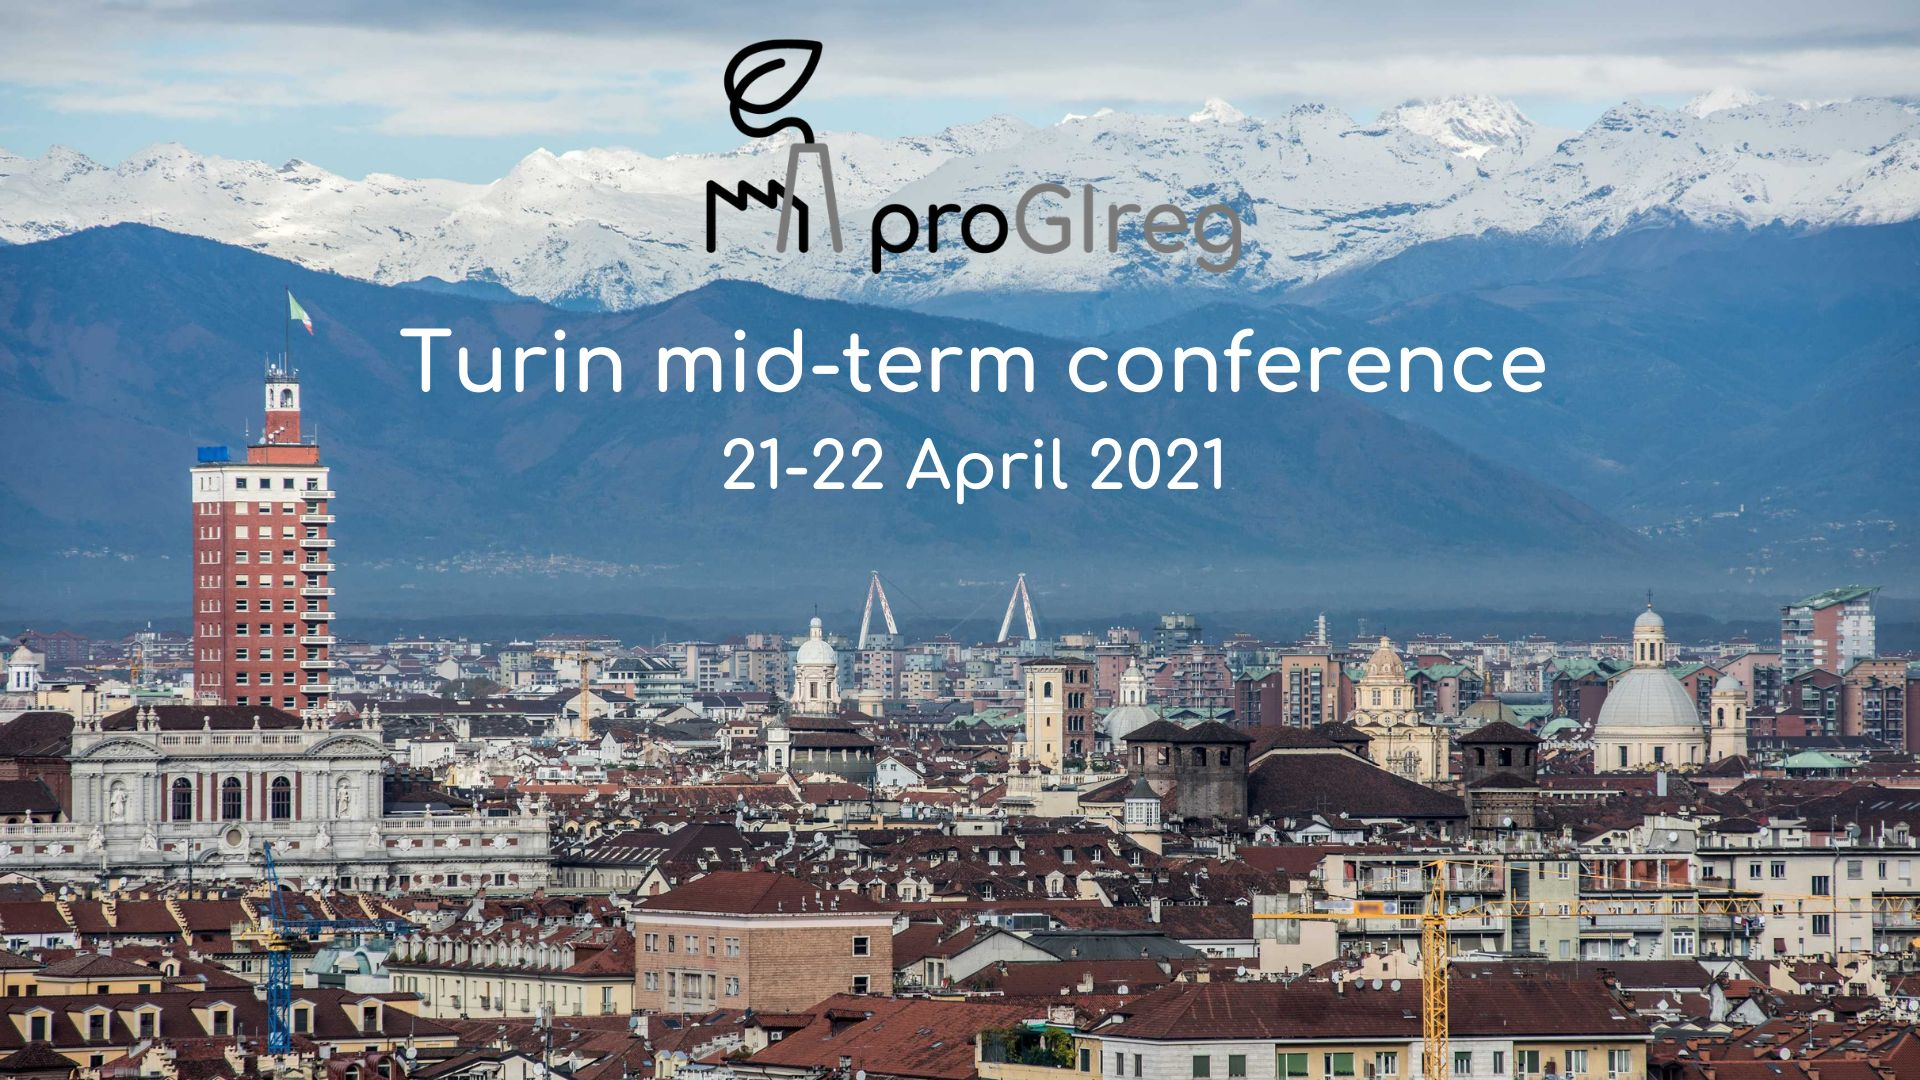 proGIreg mid-term online conference